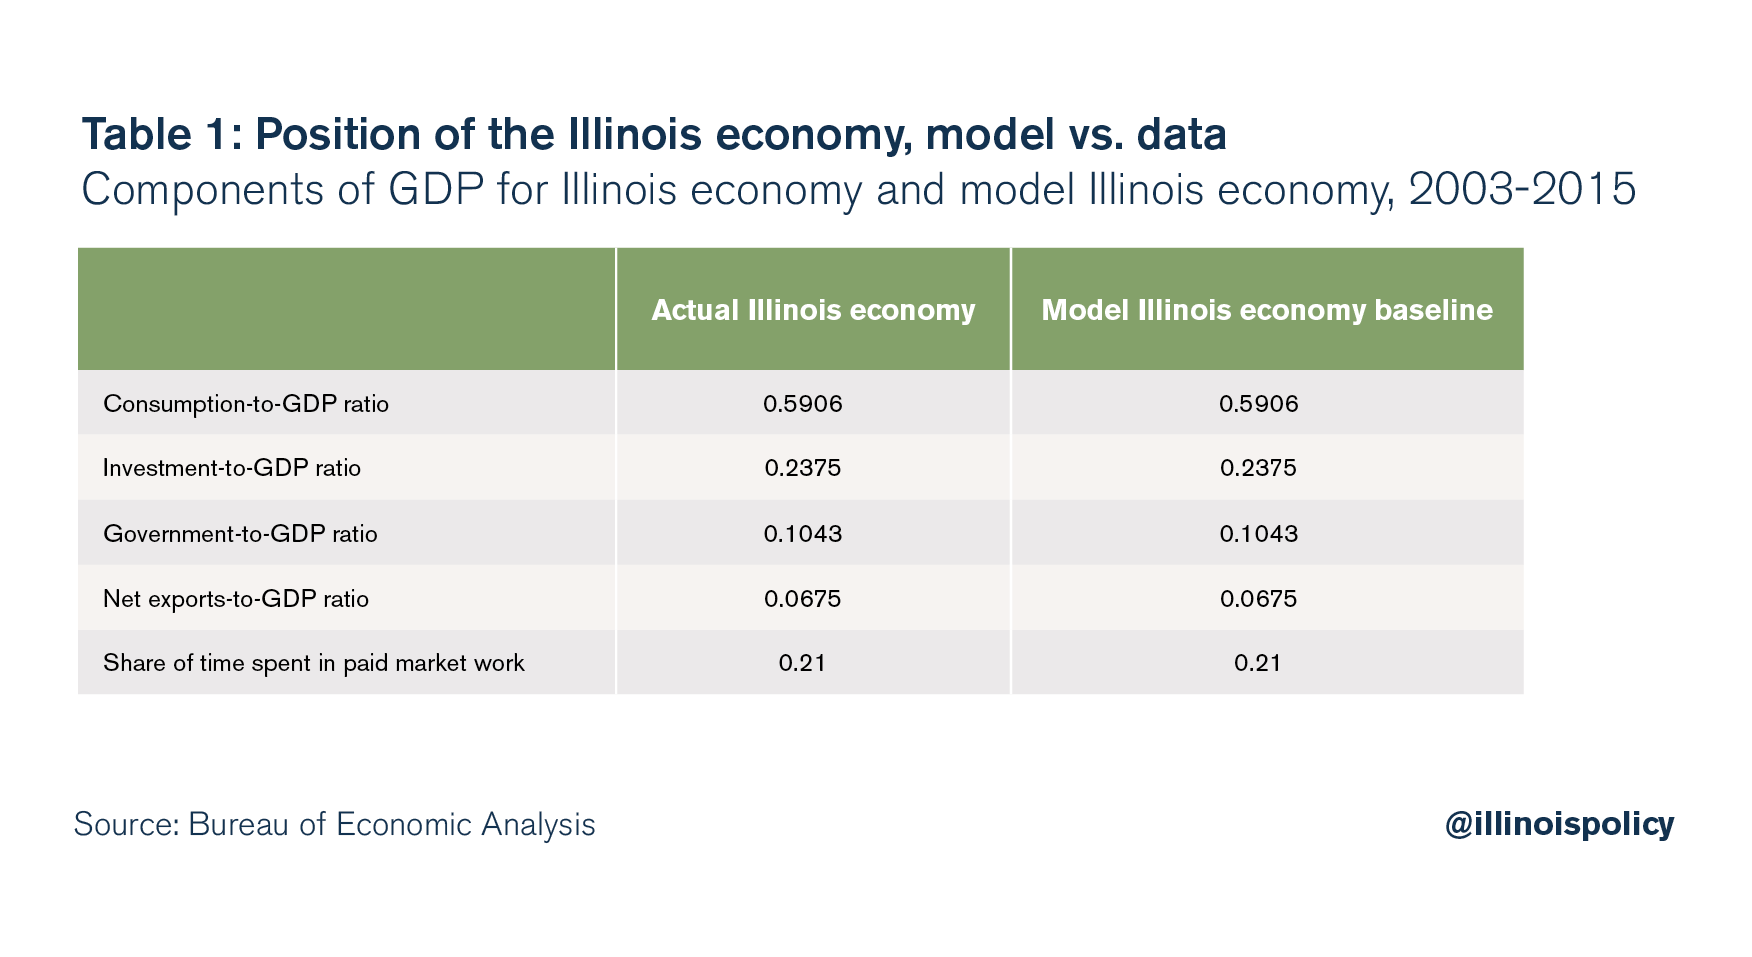 Position of the Illinois economy, model vs. data